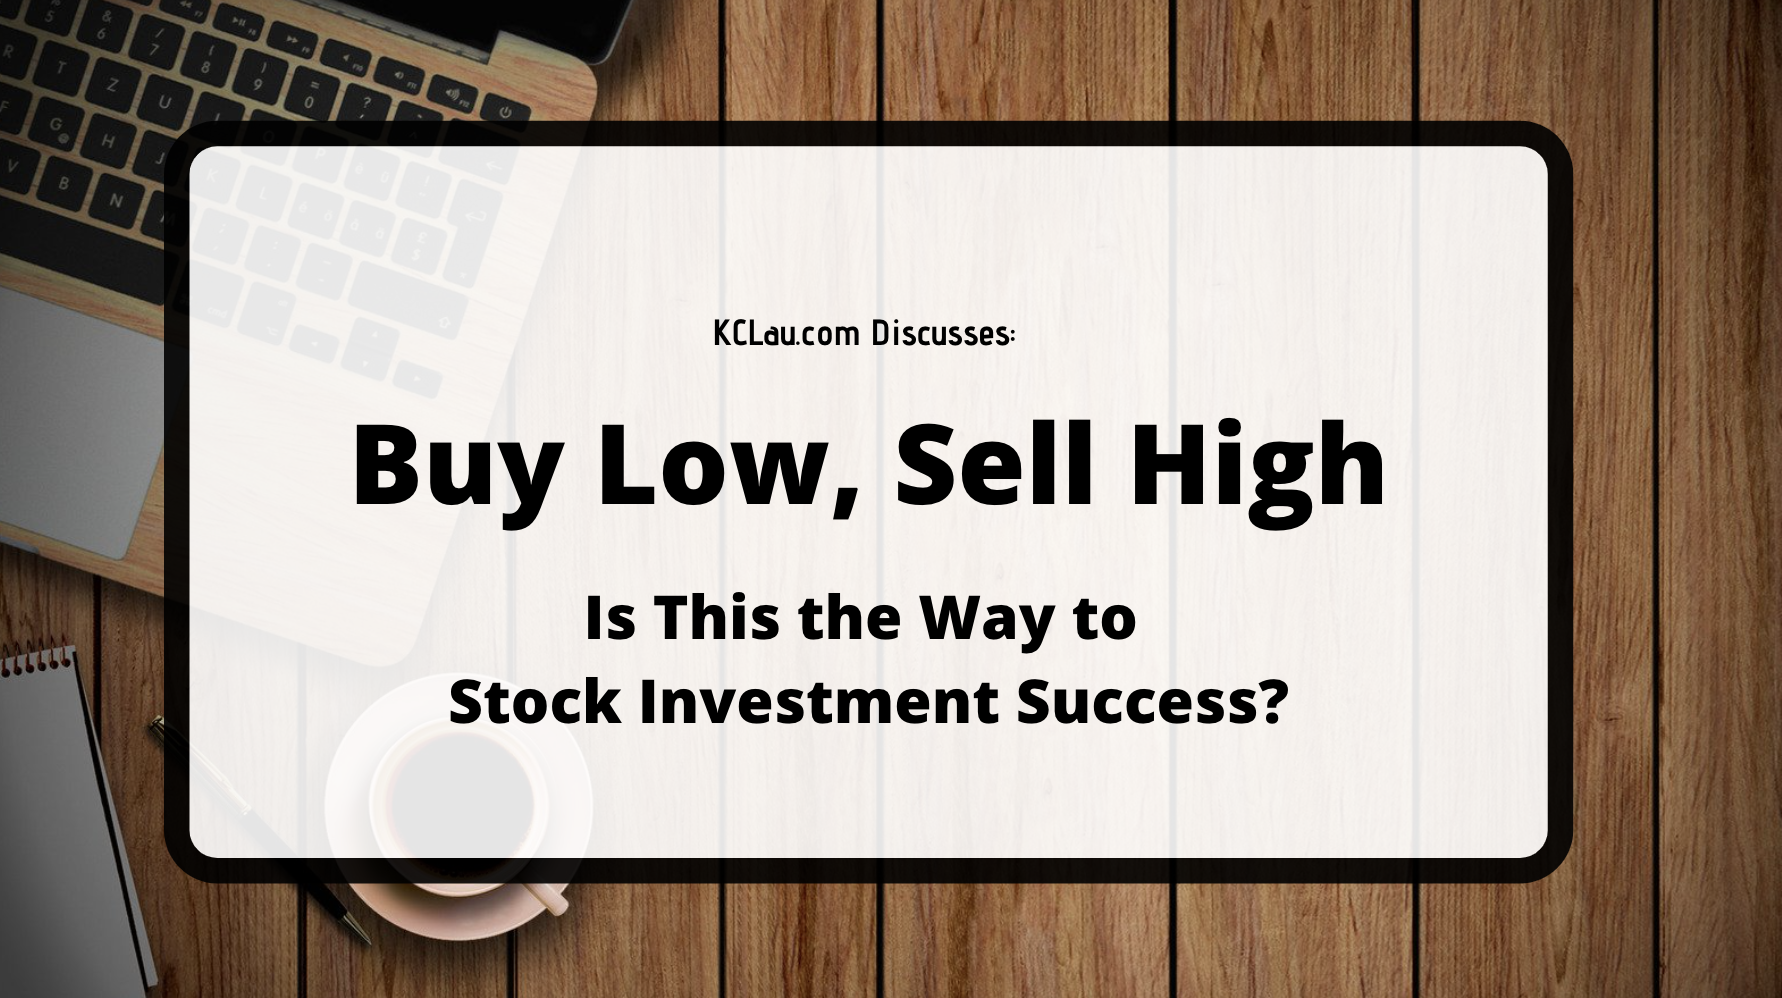 Is Stock Investment Success about Knowing How to Buy Low and Sell High?